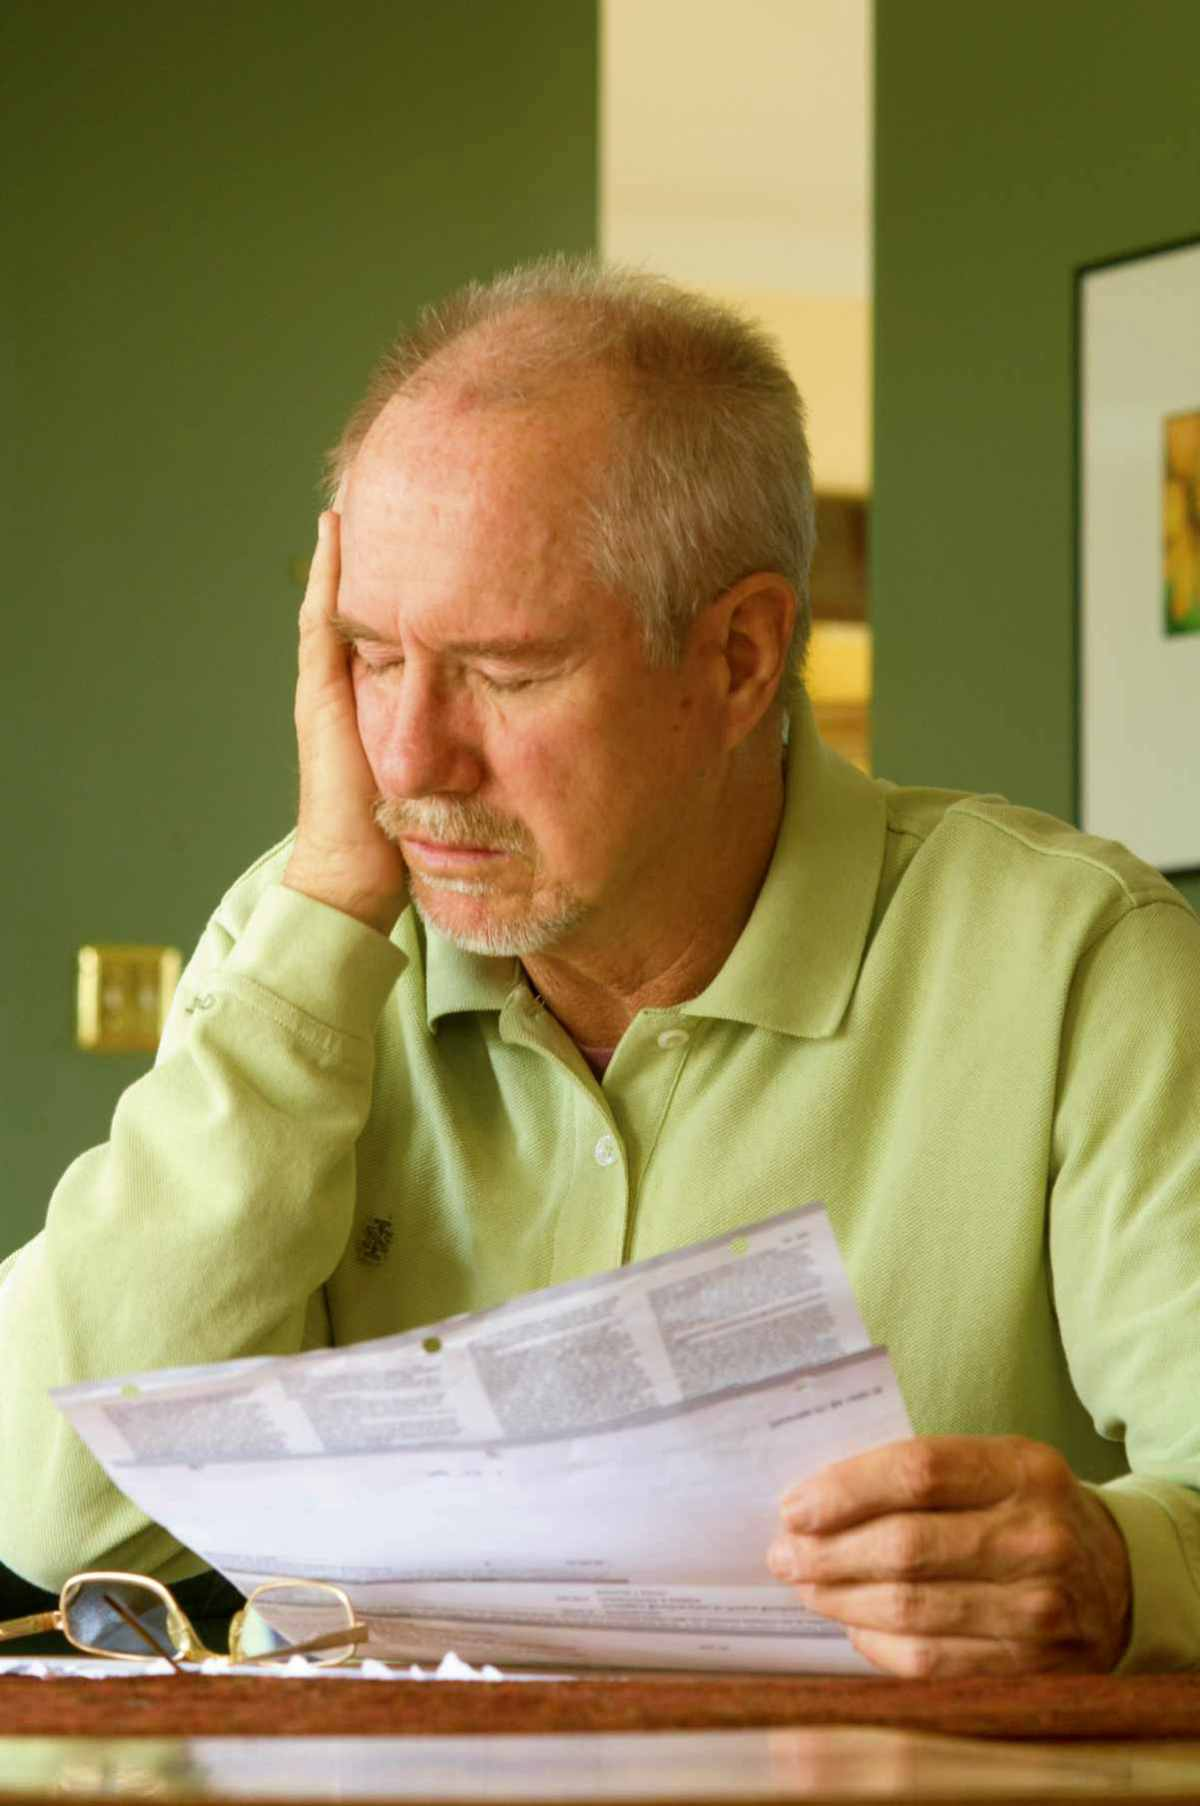 old man worried about bills and documents | What Is A 401(k) vs Roth IRA? | Benefits Of Both Inside Your IRA | roth ira